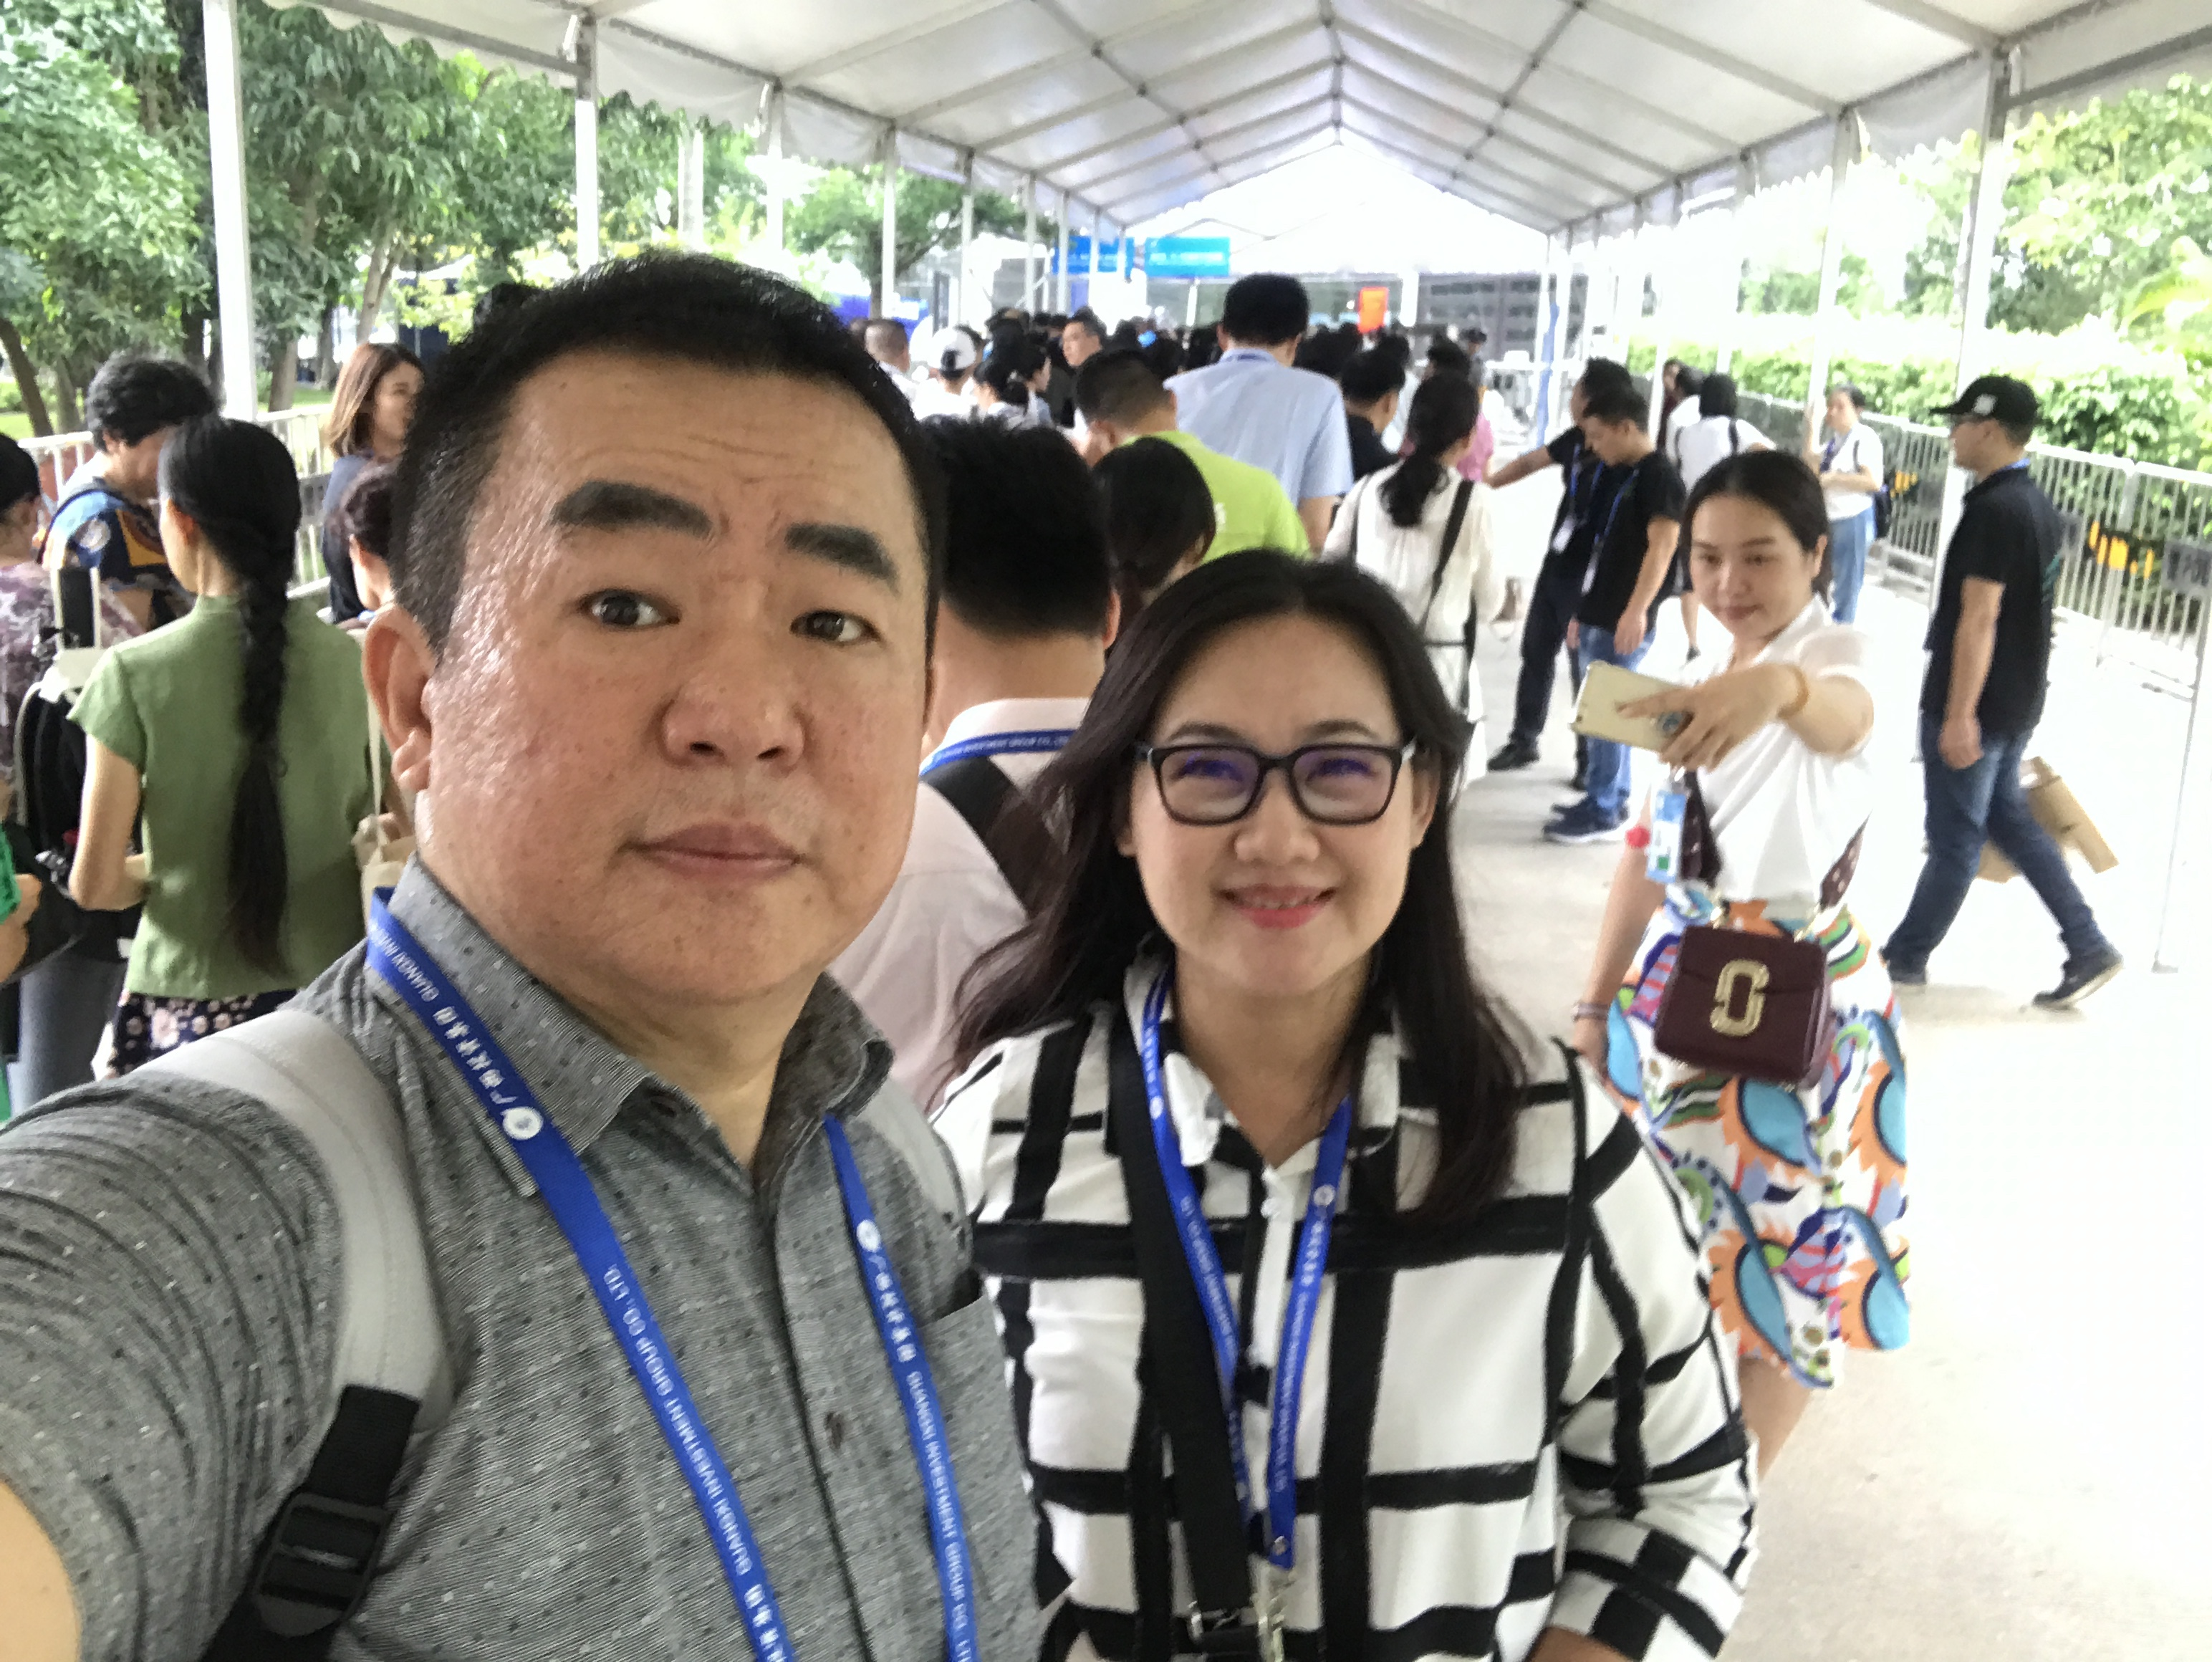 Michael and Stella at the recent CAEXPO 2017 in Nan Ning China